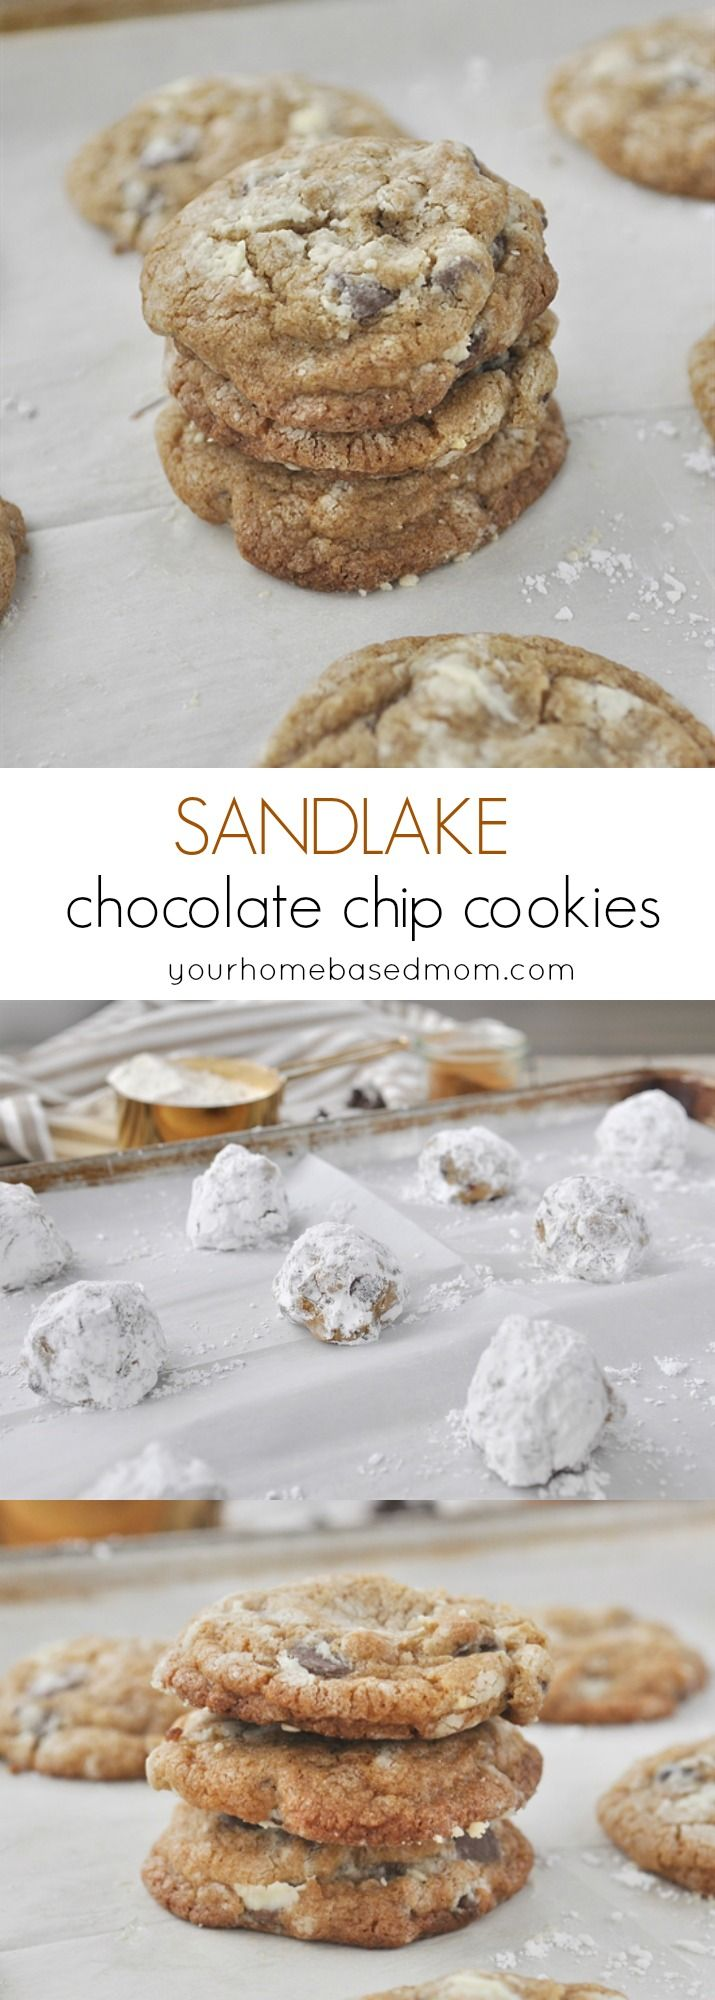 Sandlake Chocolate Chip Cookies Recipe - These Cookies are from a favorite bed & breakfast near the Oregon Coast. All their guests are greeted with this delicious treat!